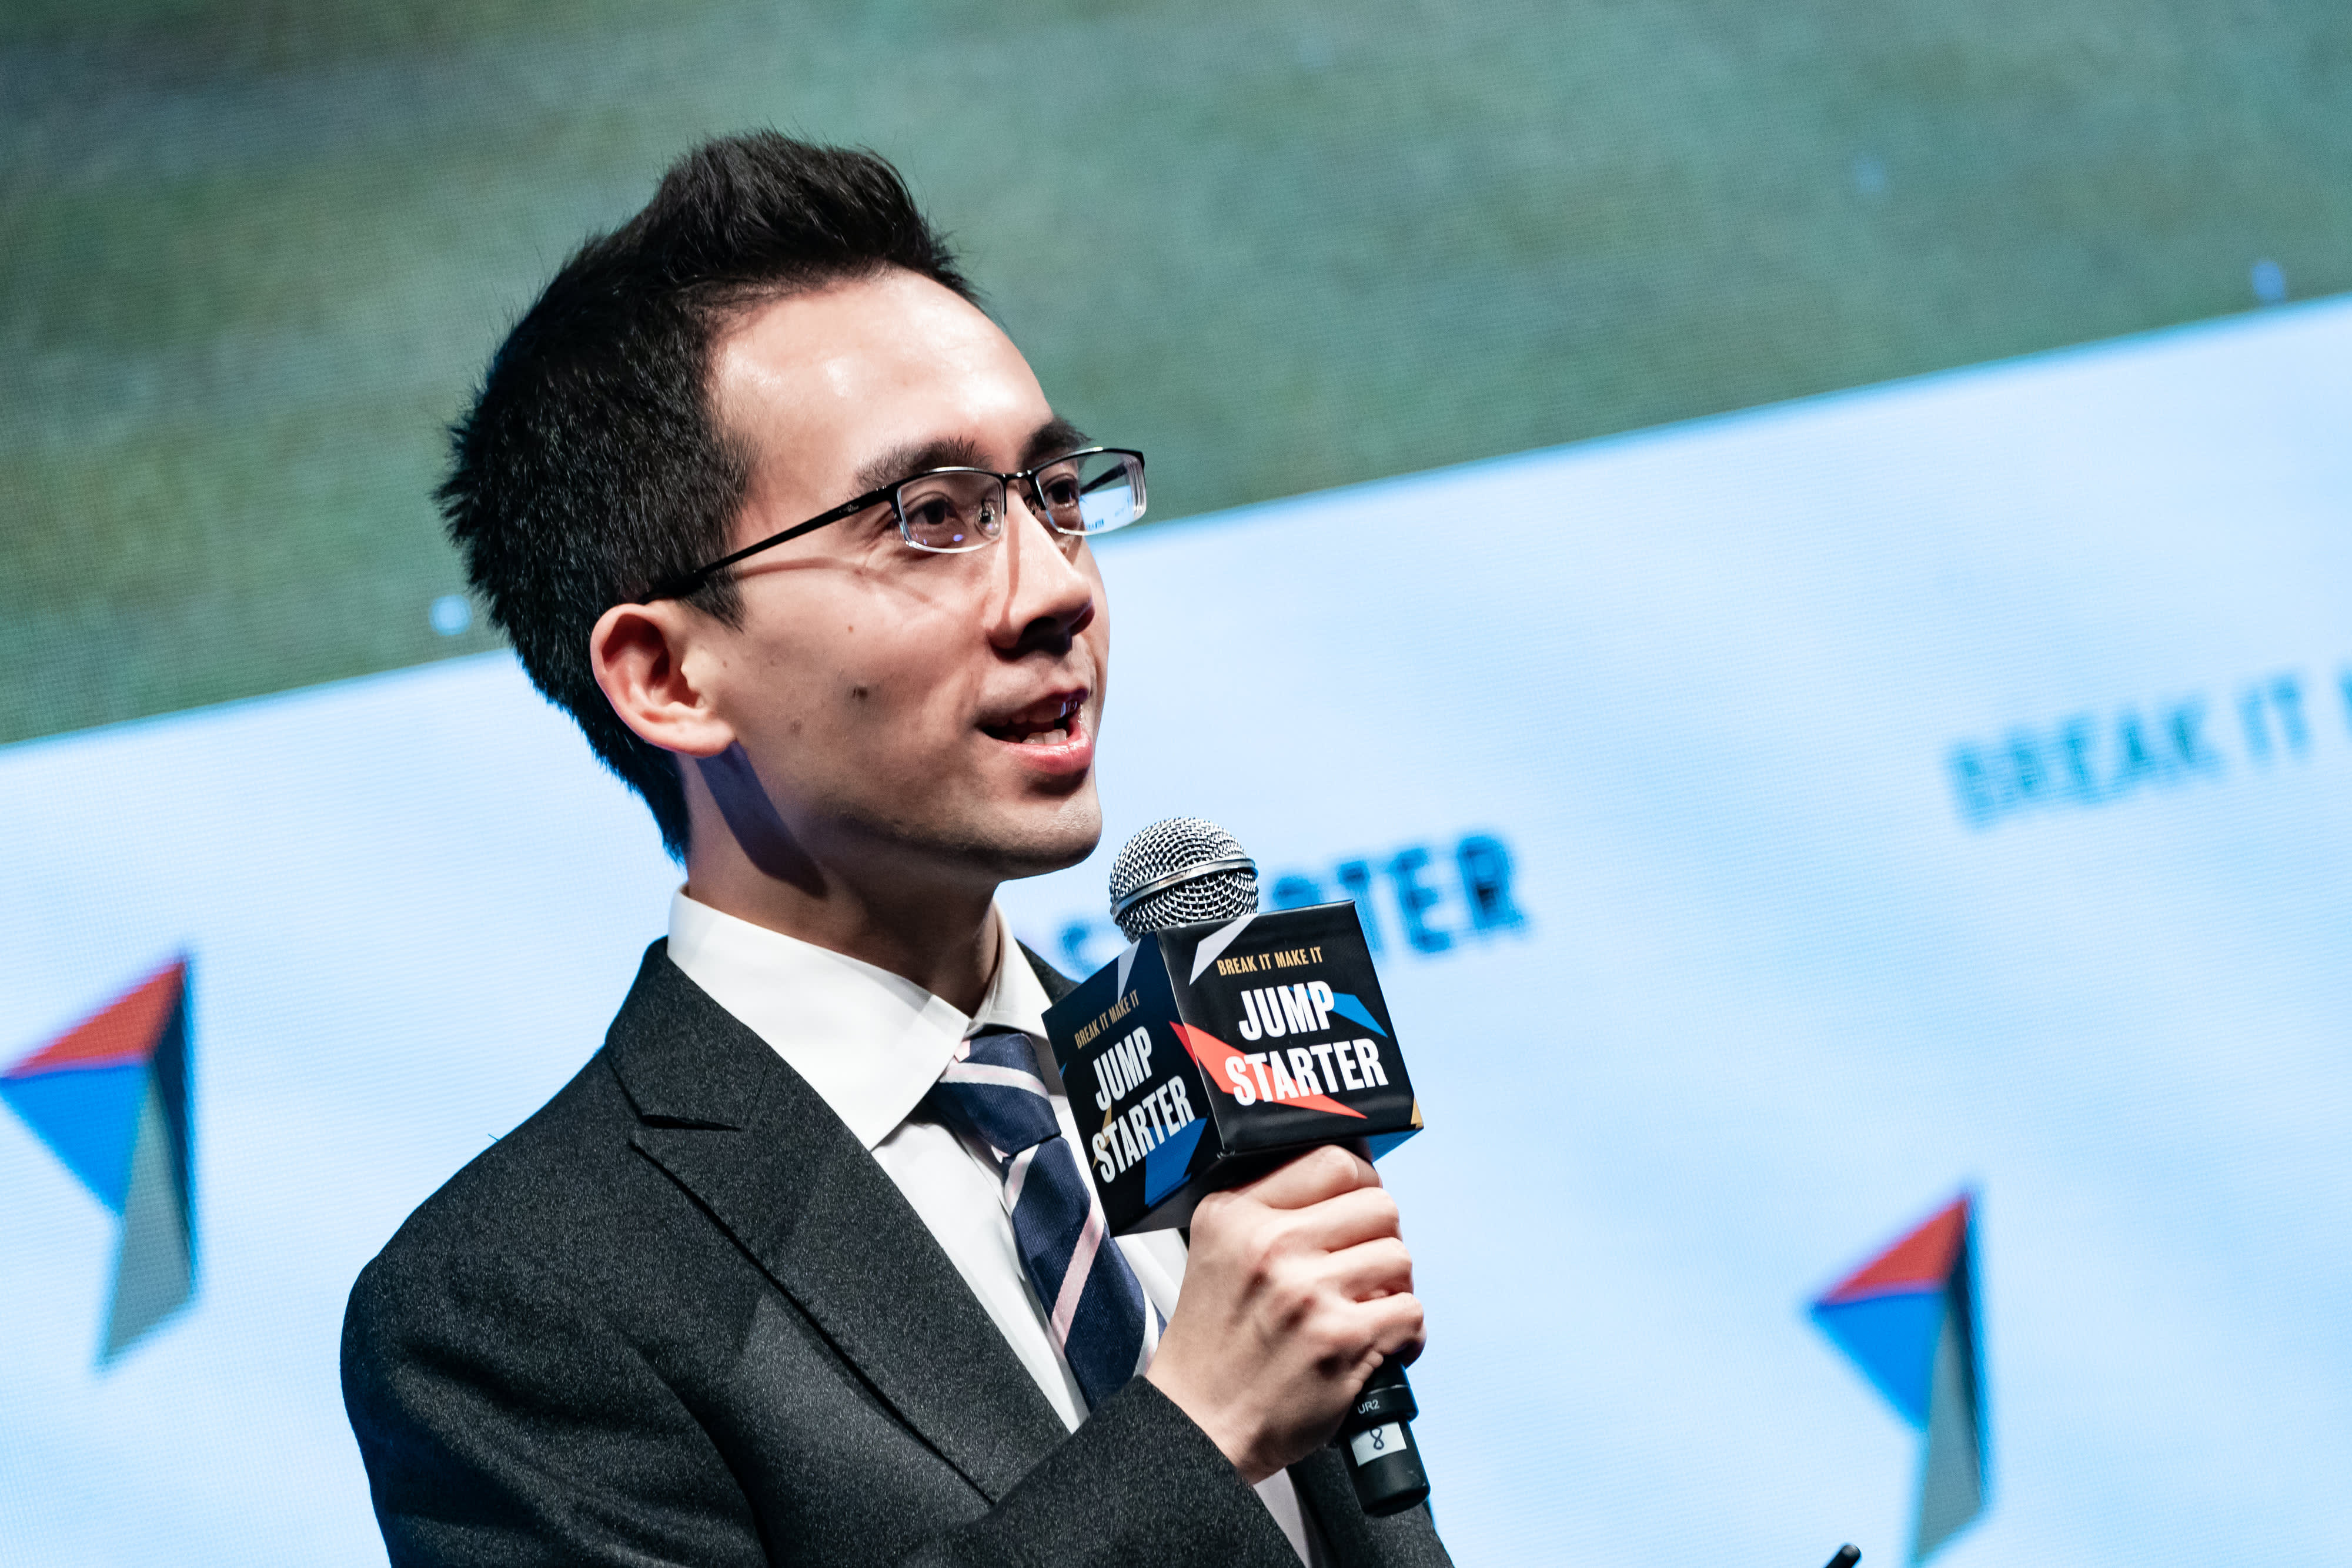 Jianxiong Xiao, founder and chief executive officer of AutoX Inc., speaks during the Jumpstarter conference in Hong Kong, China, on Thursday, Jan. 24, 2019.